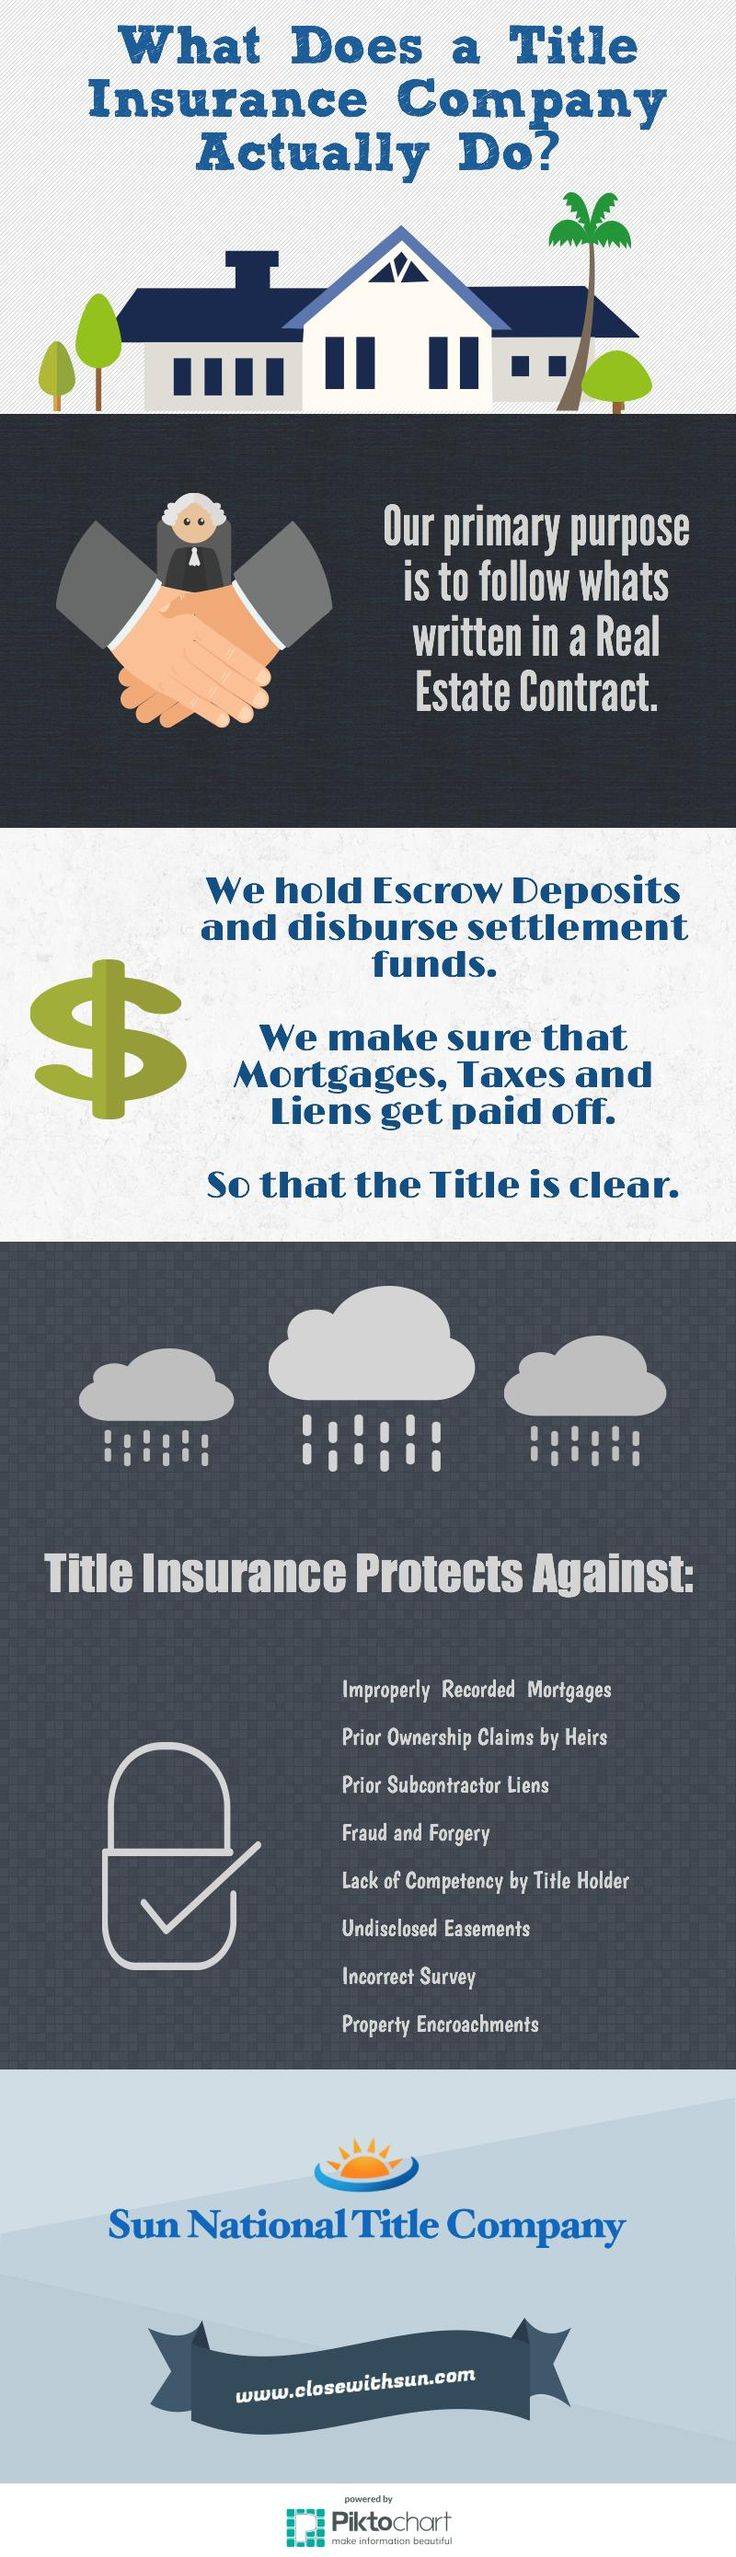 Ft Myers Title Insurance Company